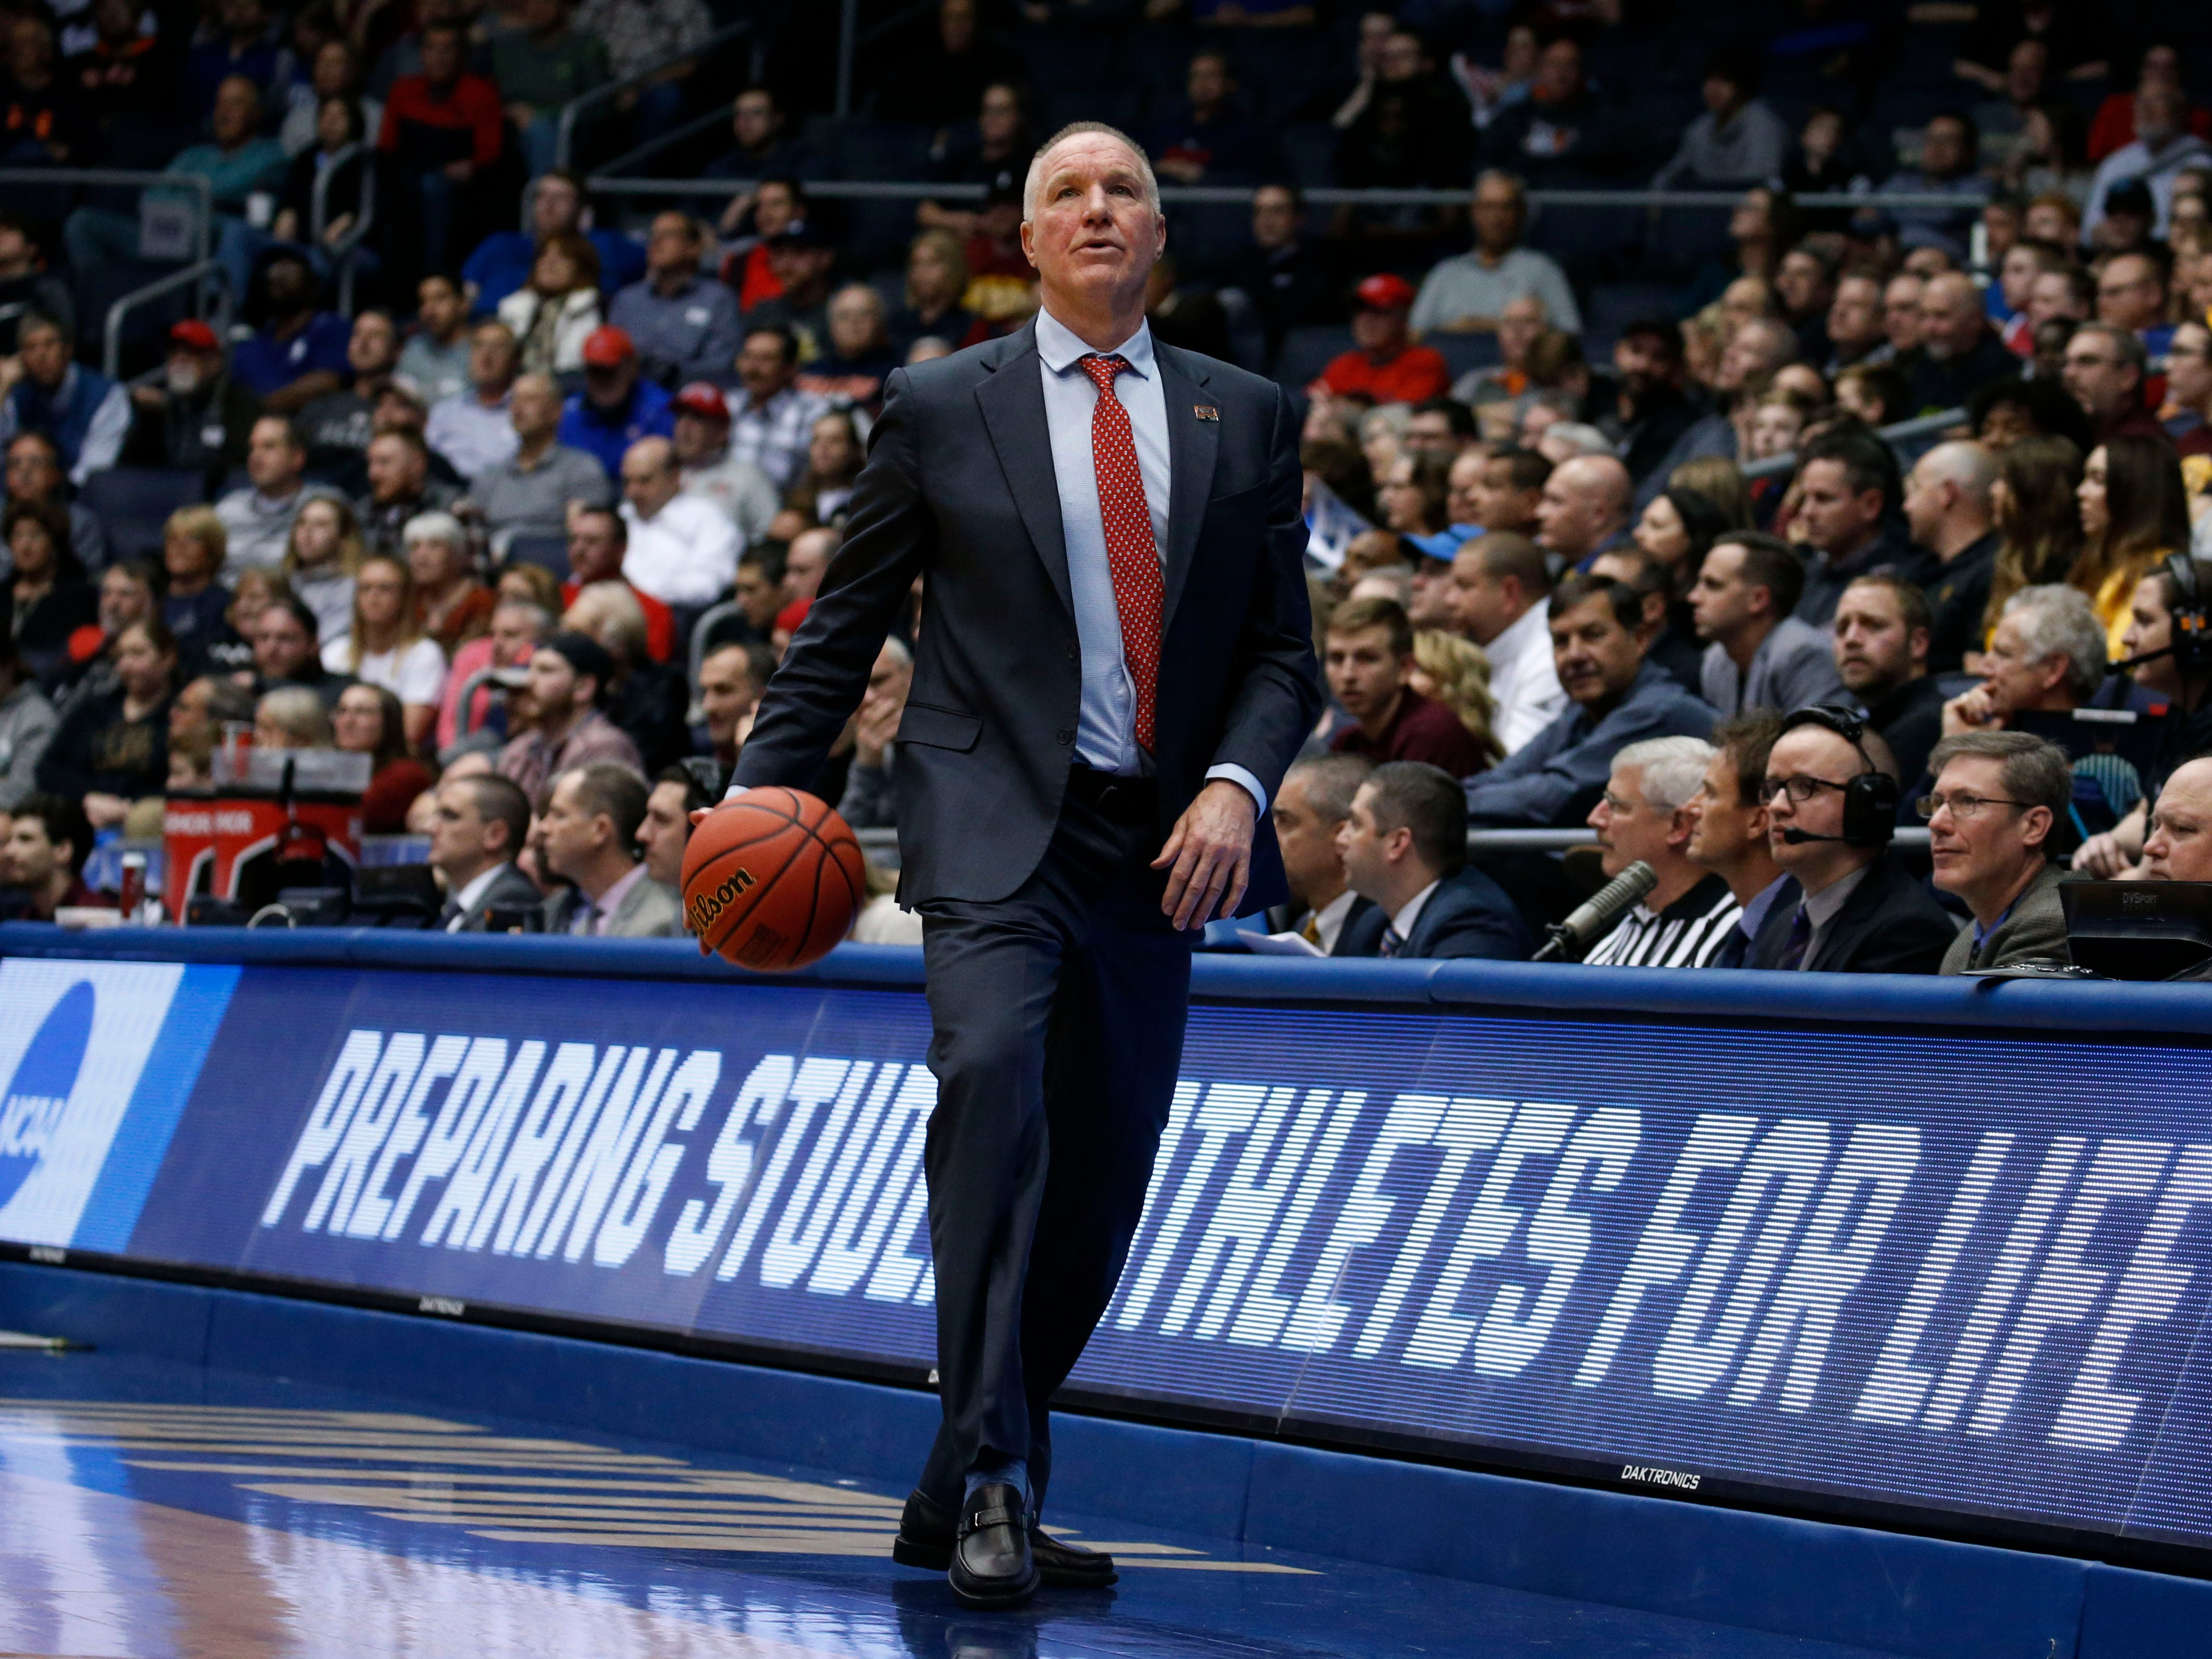 Mar 20, 2019; Dayton, OH, USA; St. John's Red Storm head coach Chris Mullin dribbles the ball down the court in the second half against the Arizona State Sun Devils in the First Four of the 2019 NCAA Tournament at Dayton Arena. Mandatory Credit: Brian Spurlock-USA TODAY Sports